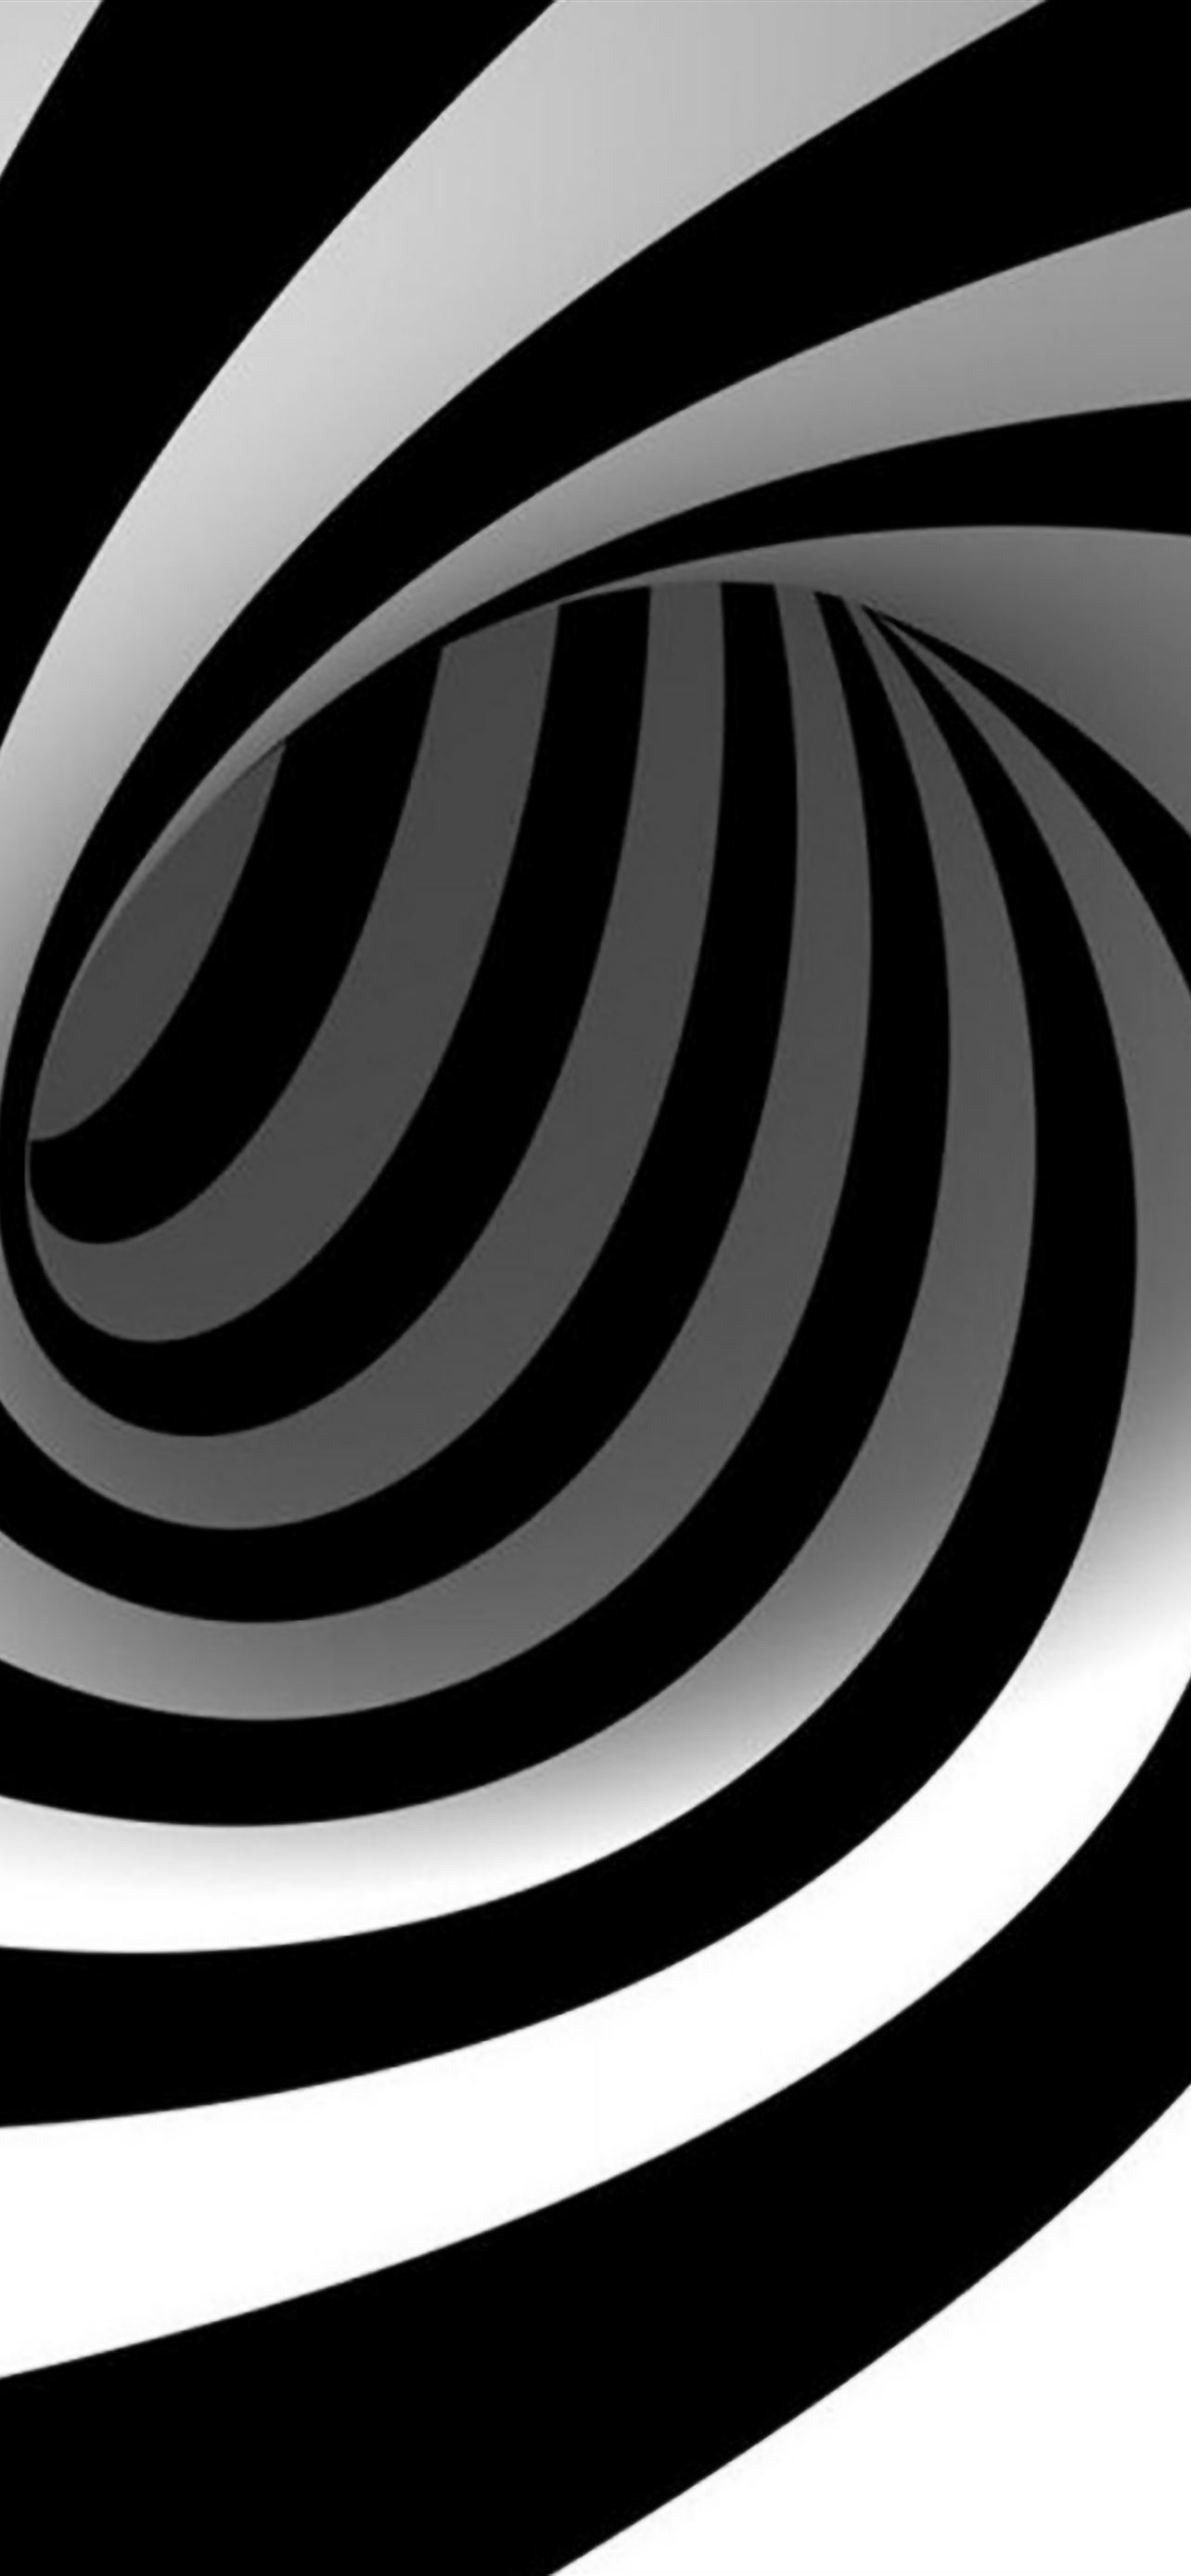 3D Abstract Swirl iPhone se wallpaper